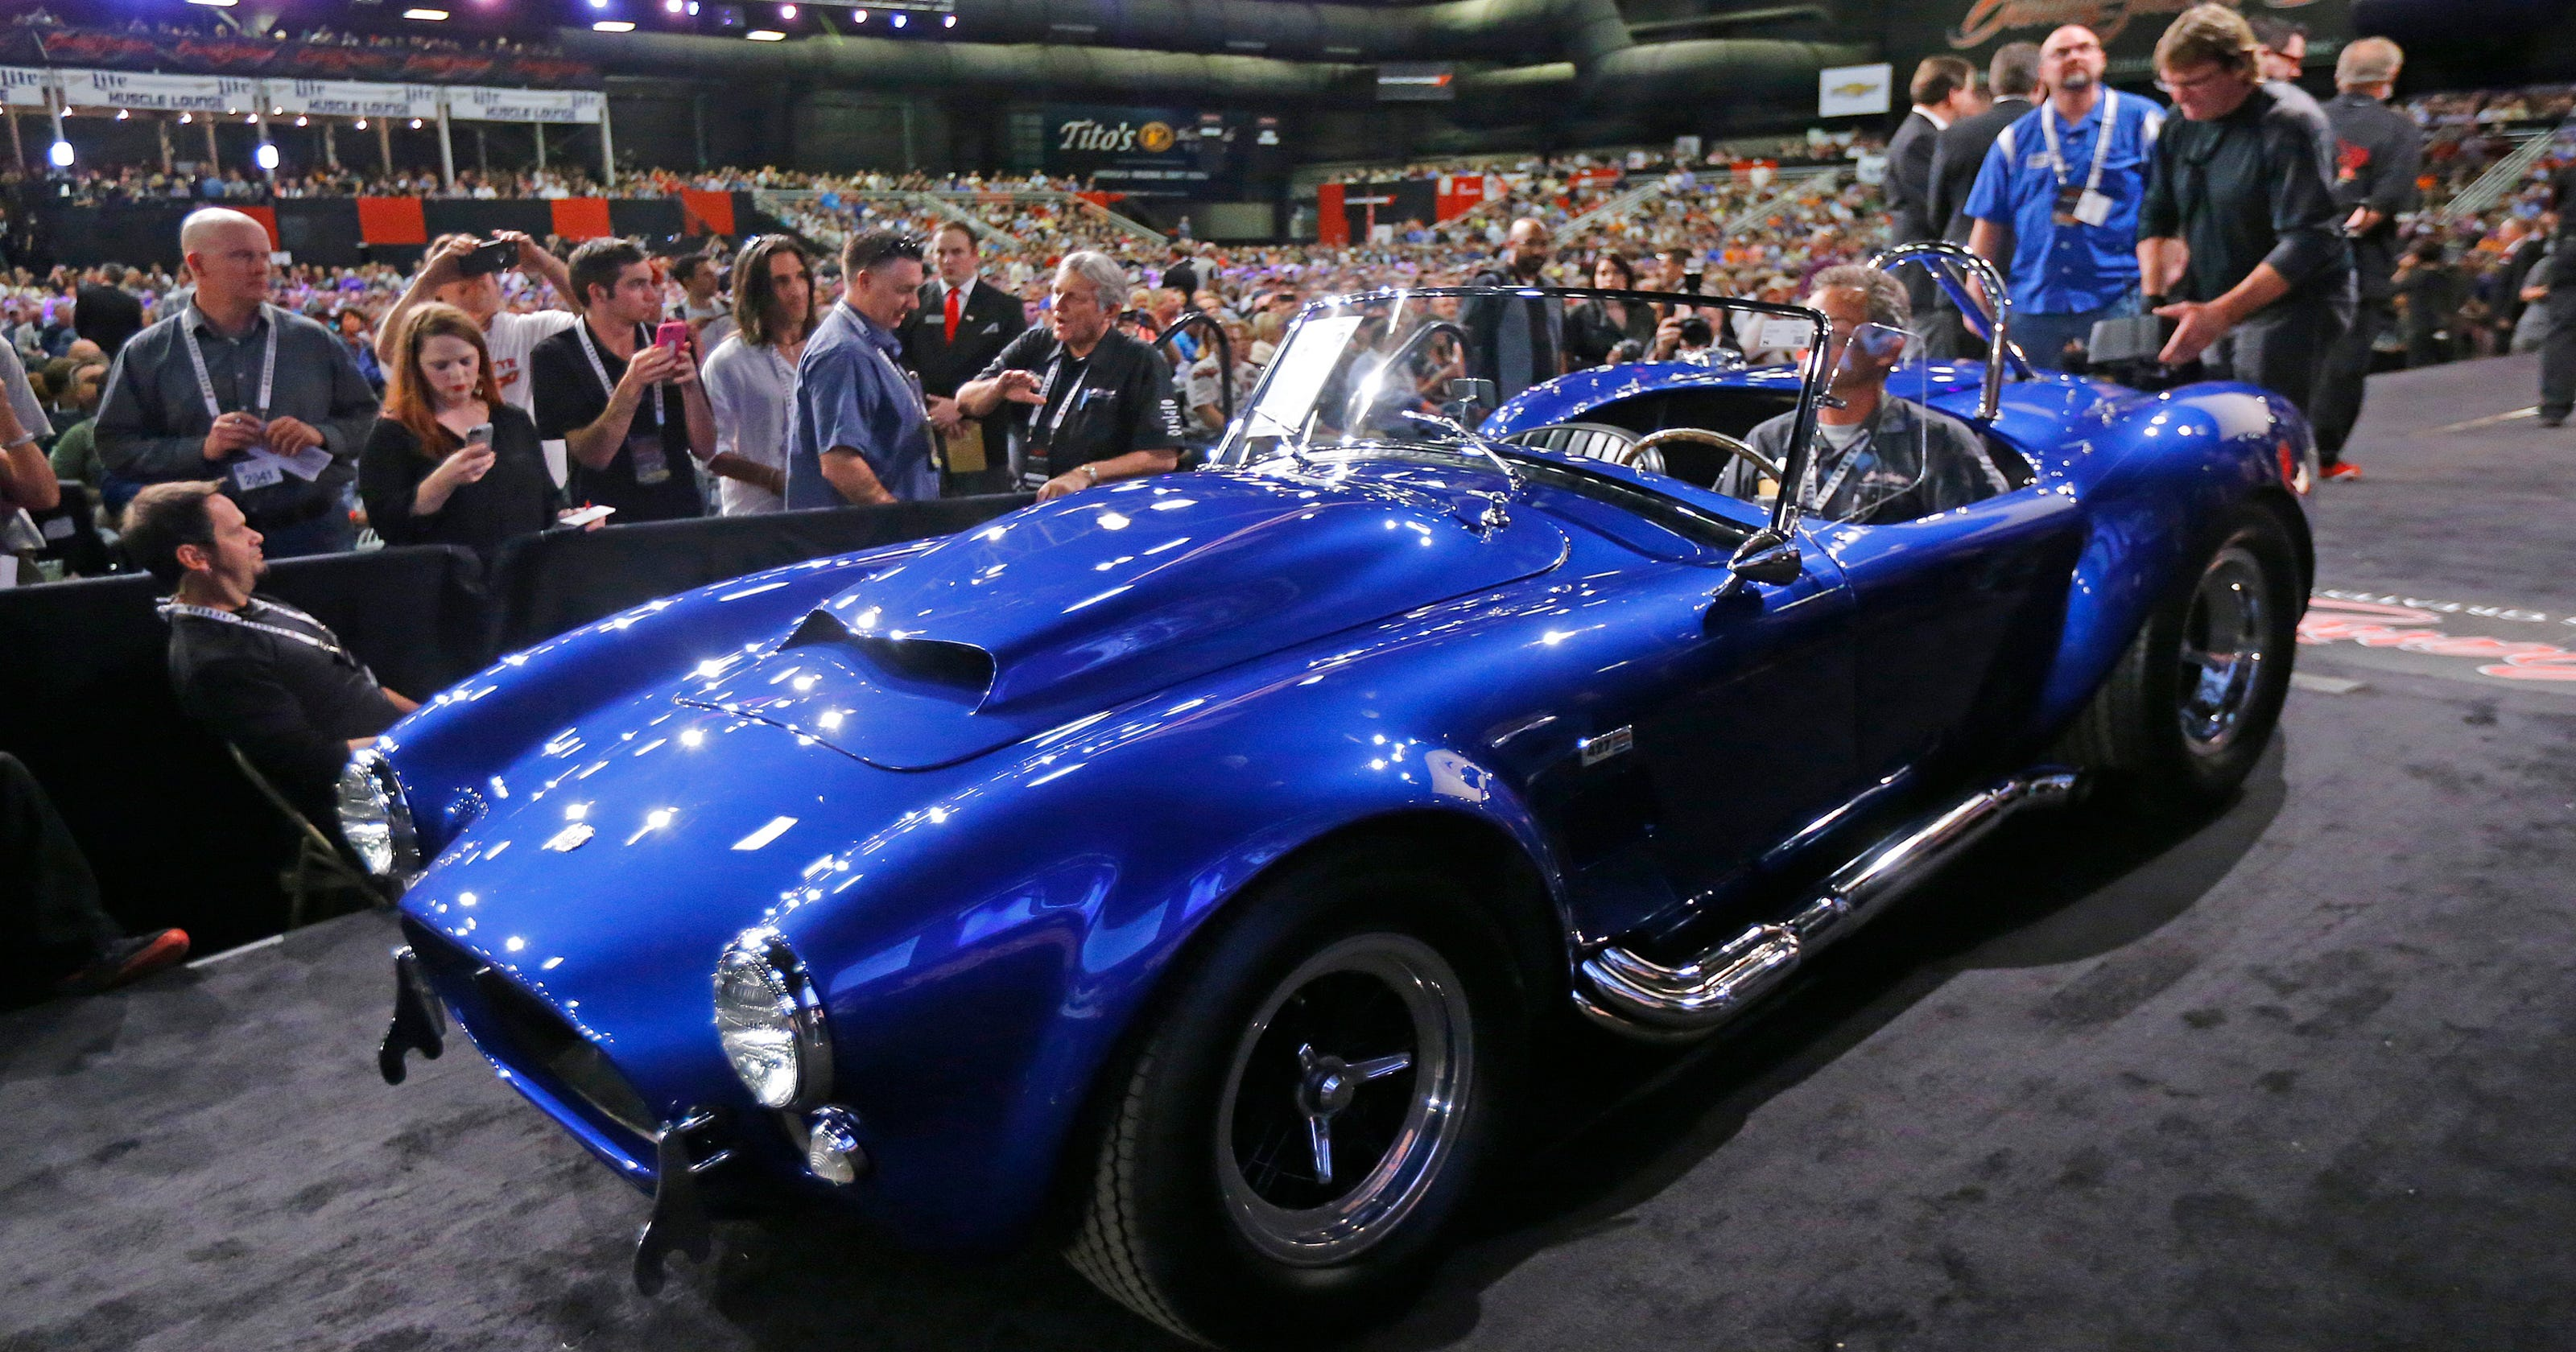 Muscle cars lead resurgence in classic car prices